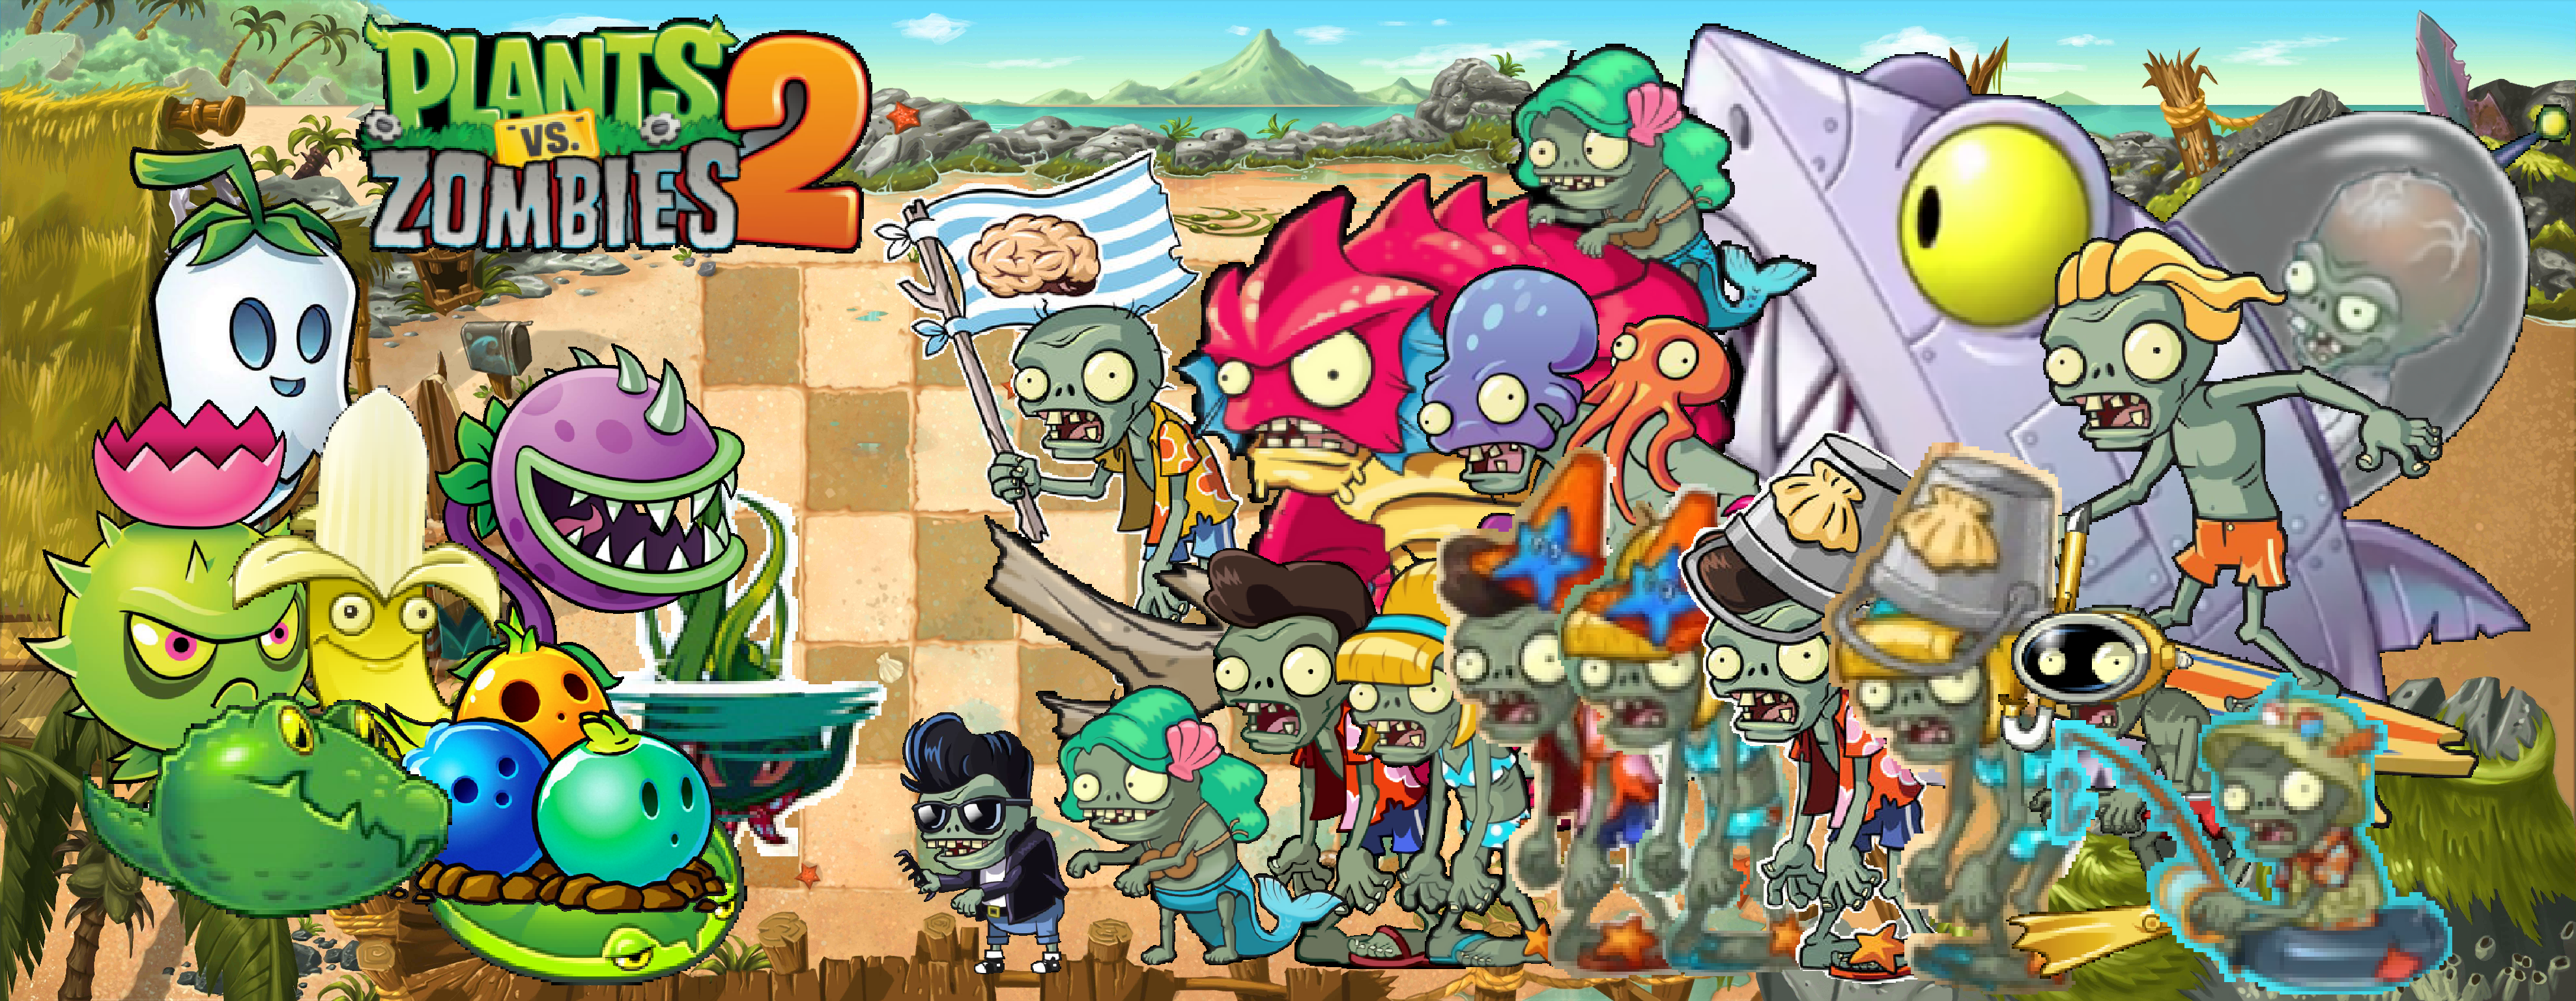 Plant Vs Zombies 2 Wallpaper: Plants Vs Zombies 2 Big Wave Beach Wallpaper By